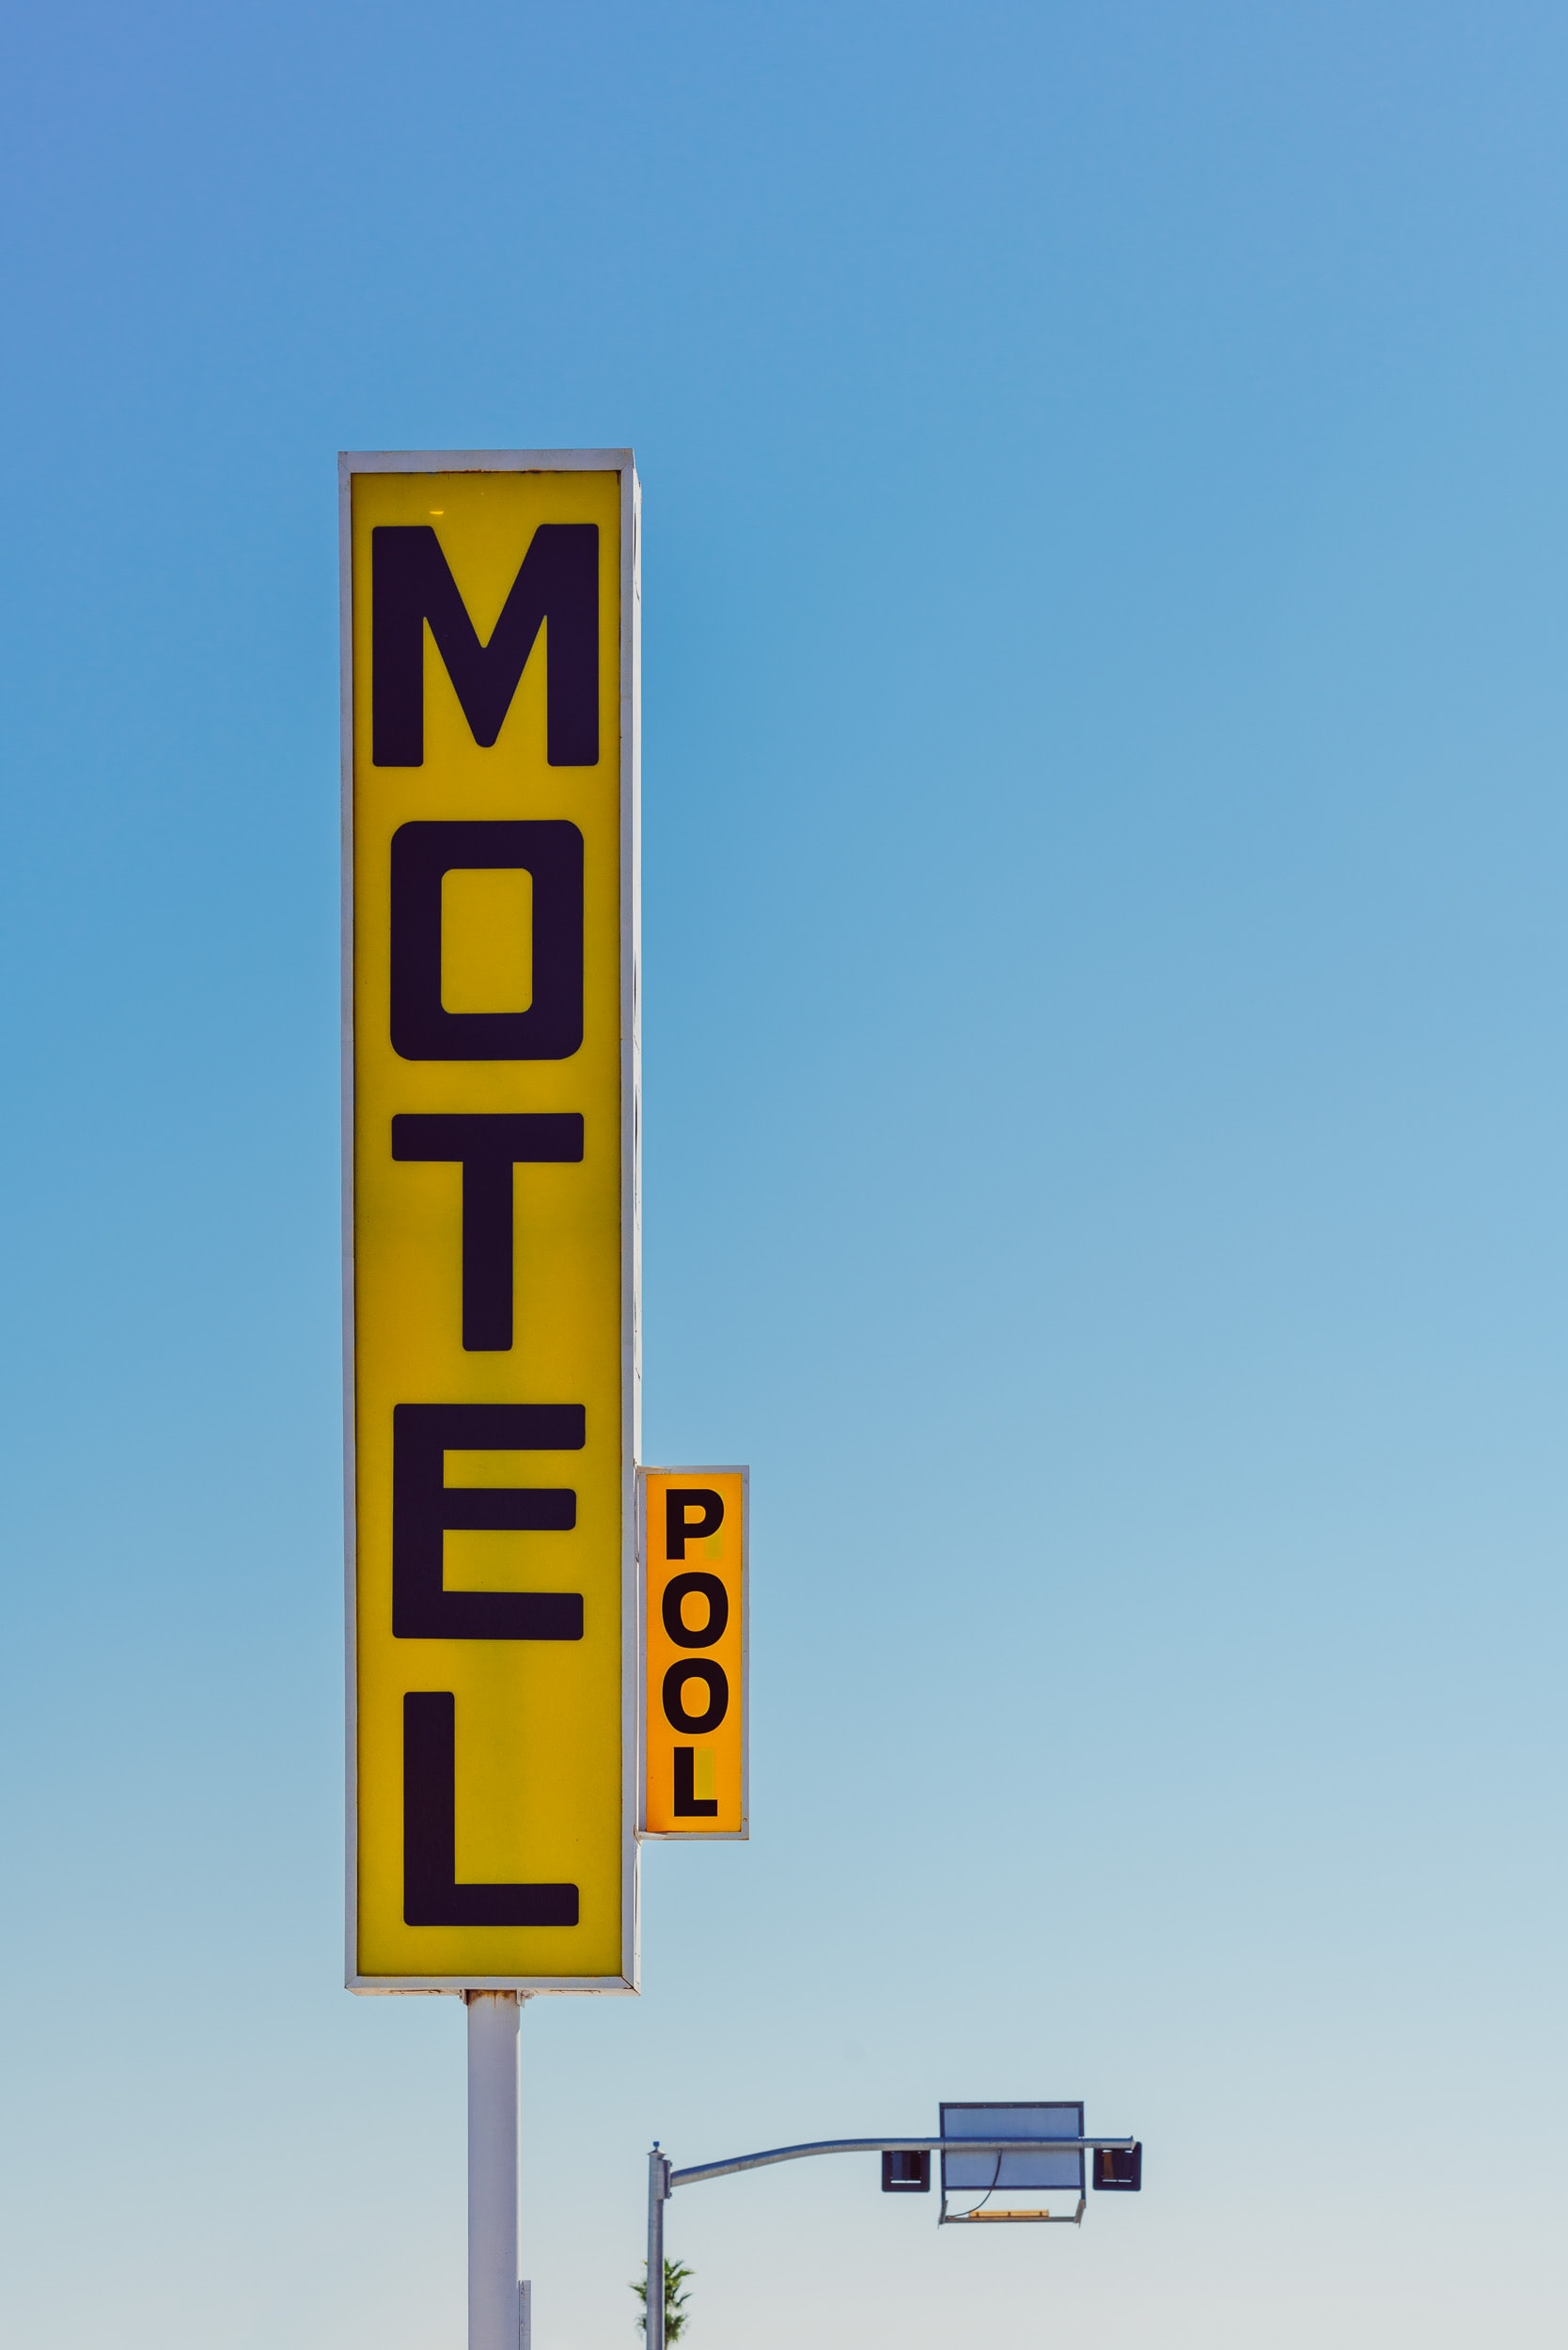 yellow and black Motel signage taken at daytime